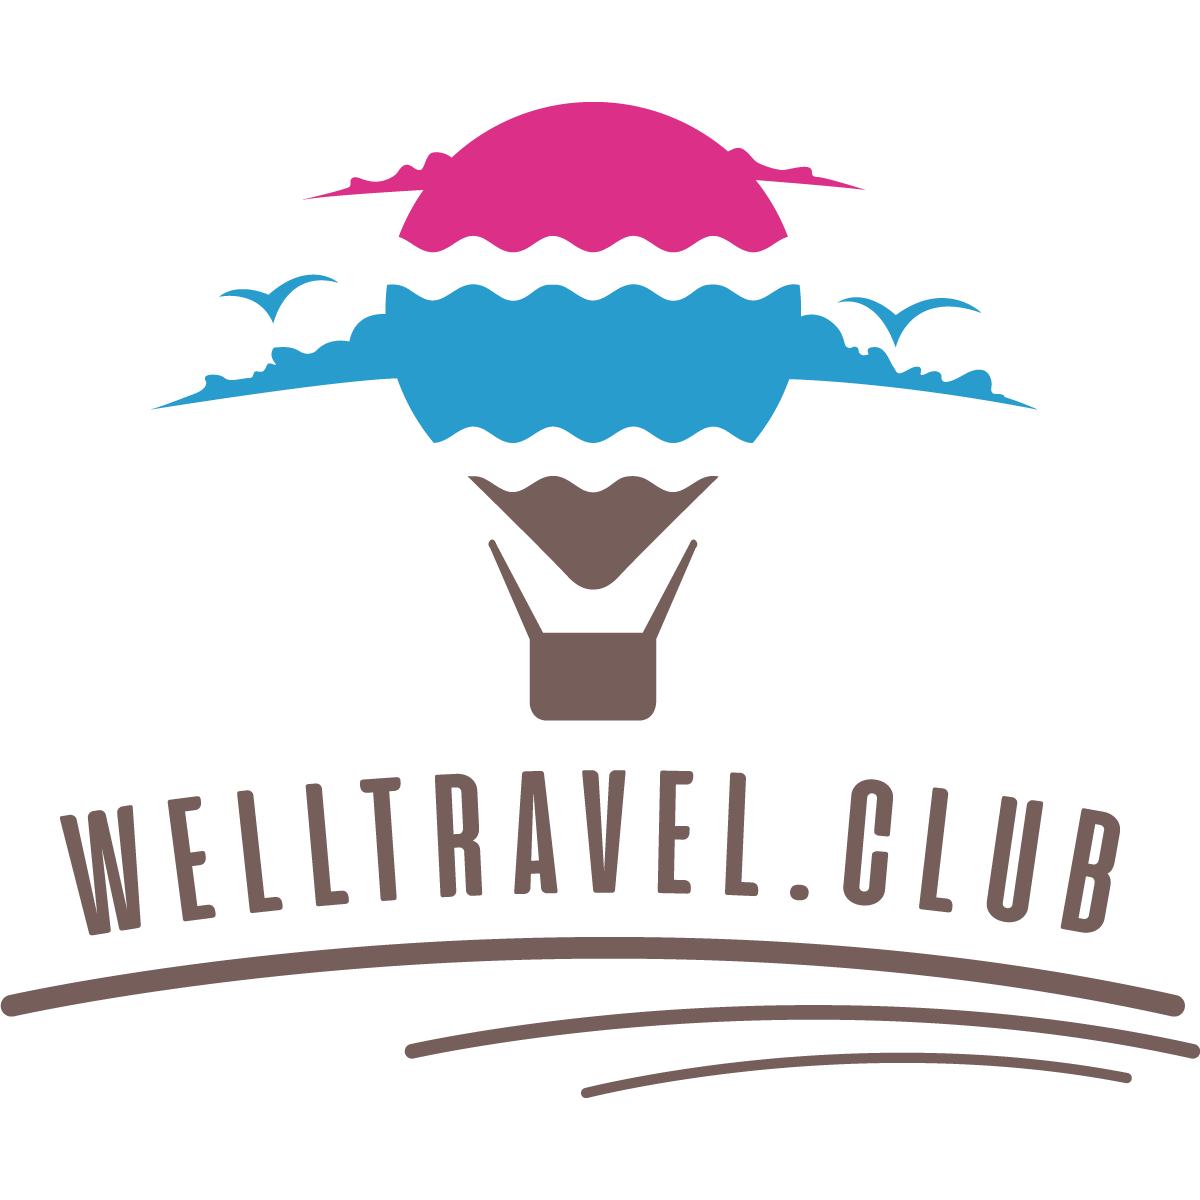 WellTravel.Club